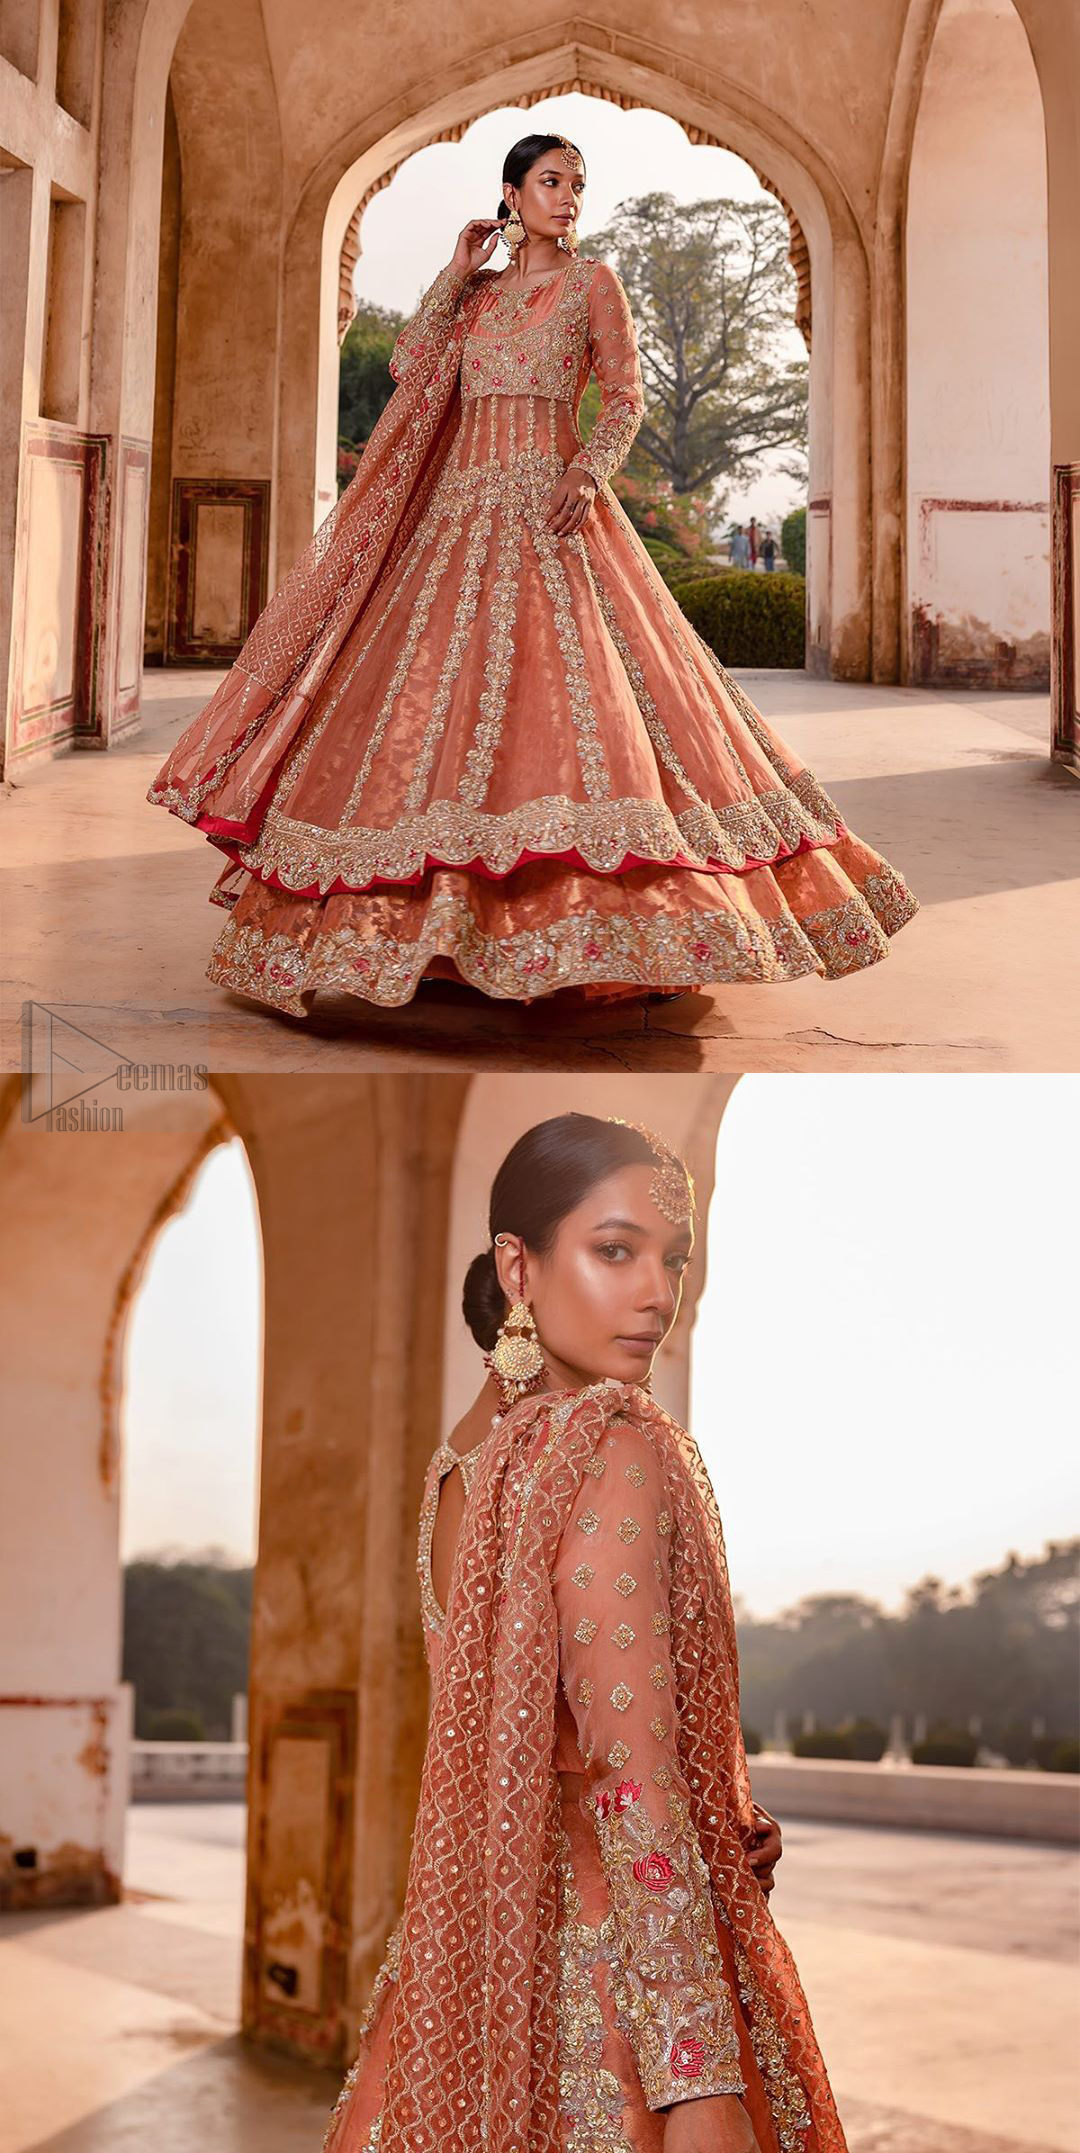 You are all set to make a lasting impact with the divine royalty of this dress. This garment is sure to make you look like glamorous with immaculate work covering every inch of the pishwas with multiple panels. This pishwas made of zardozi work with scalloped hemline and applique is everything that you need for your festivities. The brocade lehenga is beautifully adorned with thick embellished bottom with zardozi work in the shades of silver and gold. Style it up with peach organza dupatta with criss-cross patterns and floral booties on borders. This is an ensemble that deserves to be flaunted.